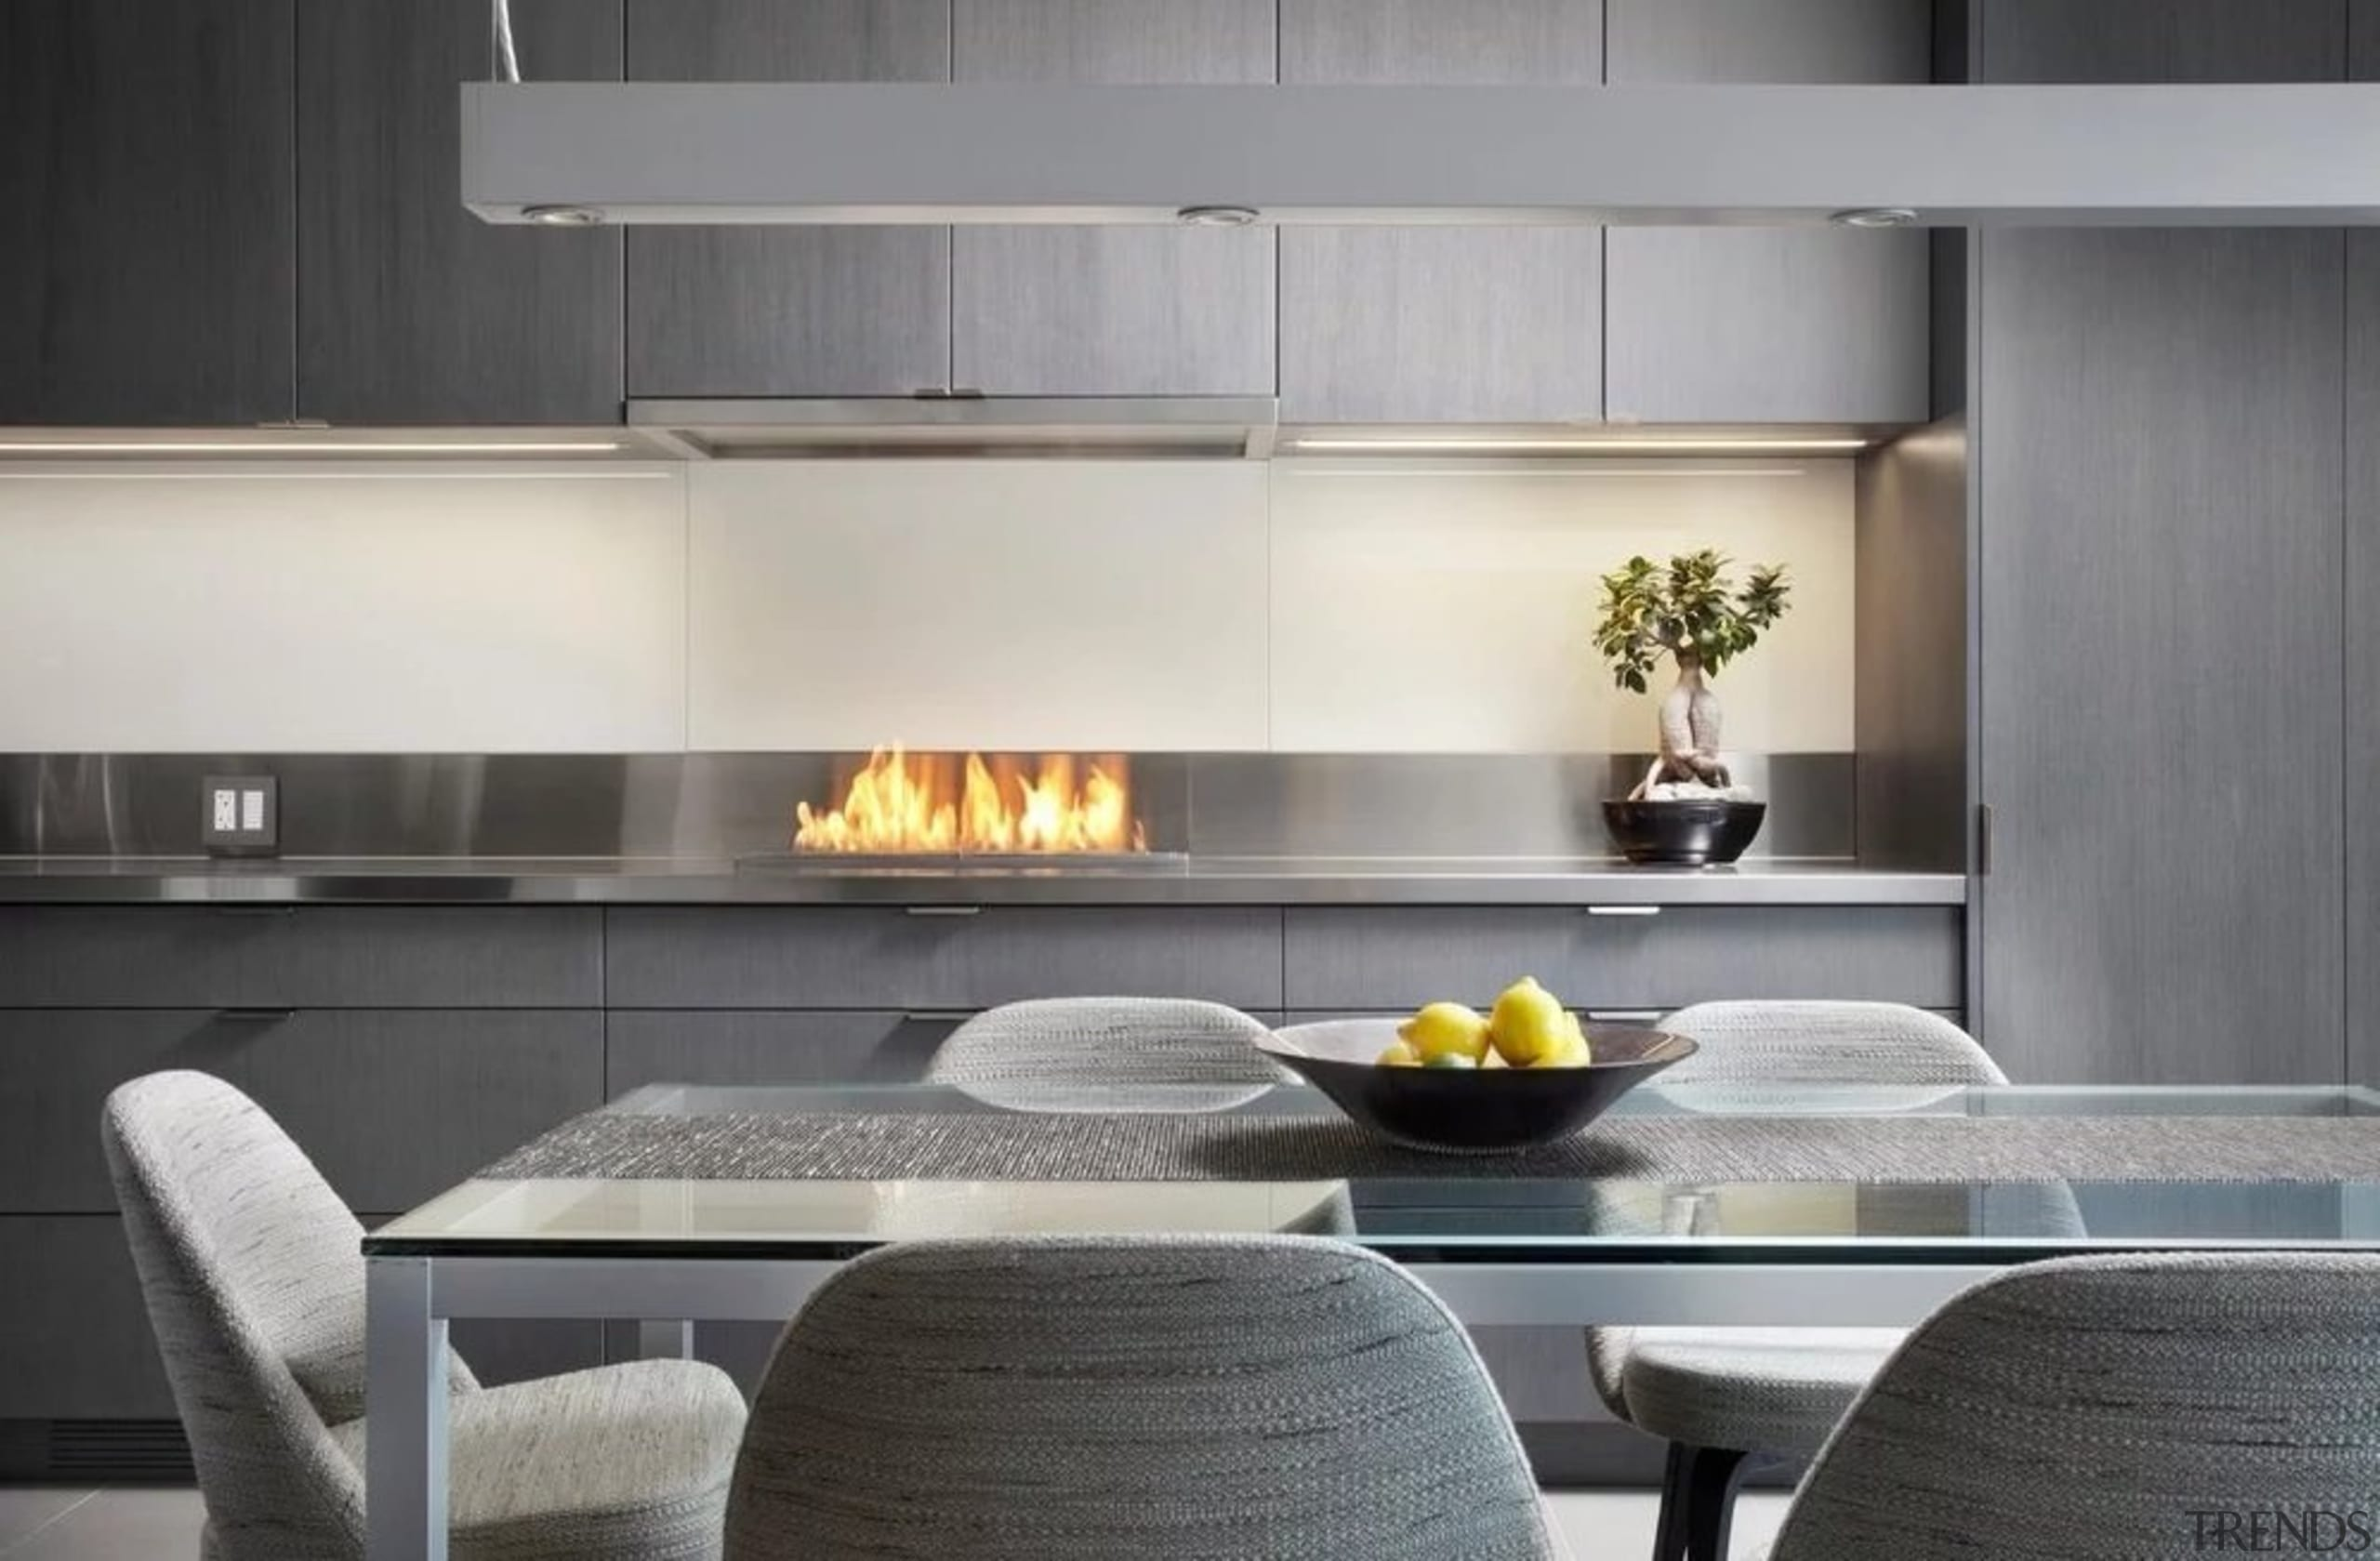 About to redesign? Check out these trends ... countertop, interior design, kitchen, kitchen stove, product design, table, gray, black